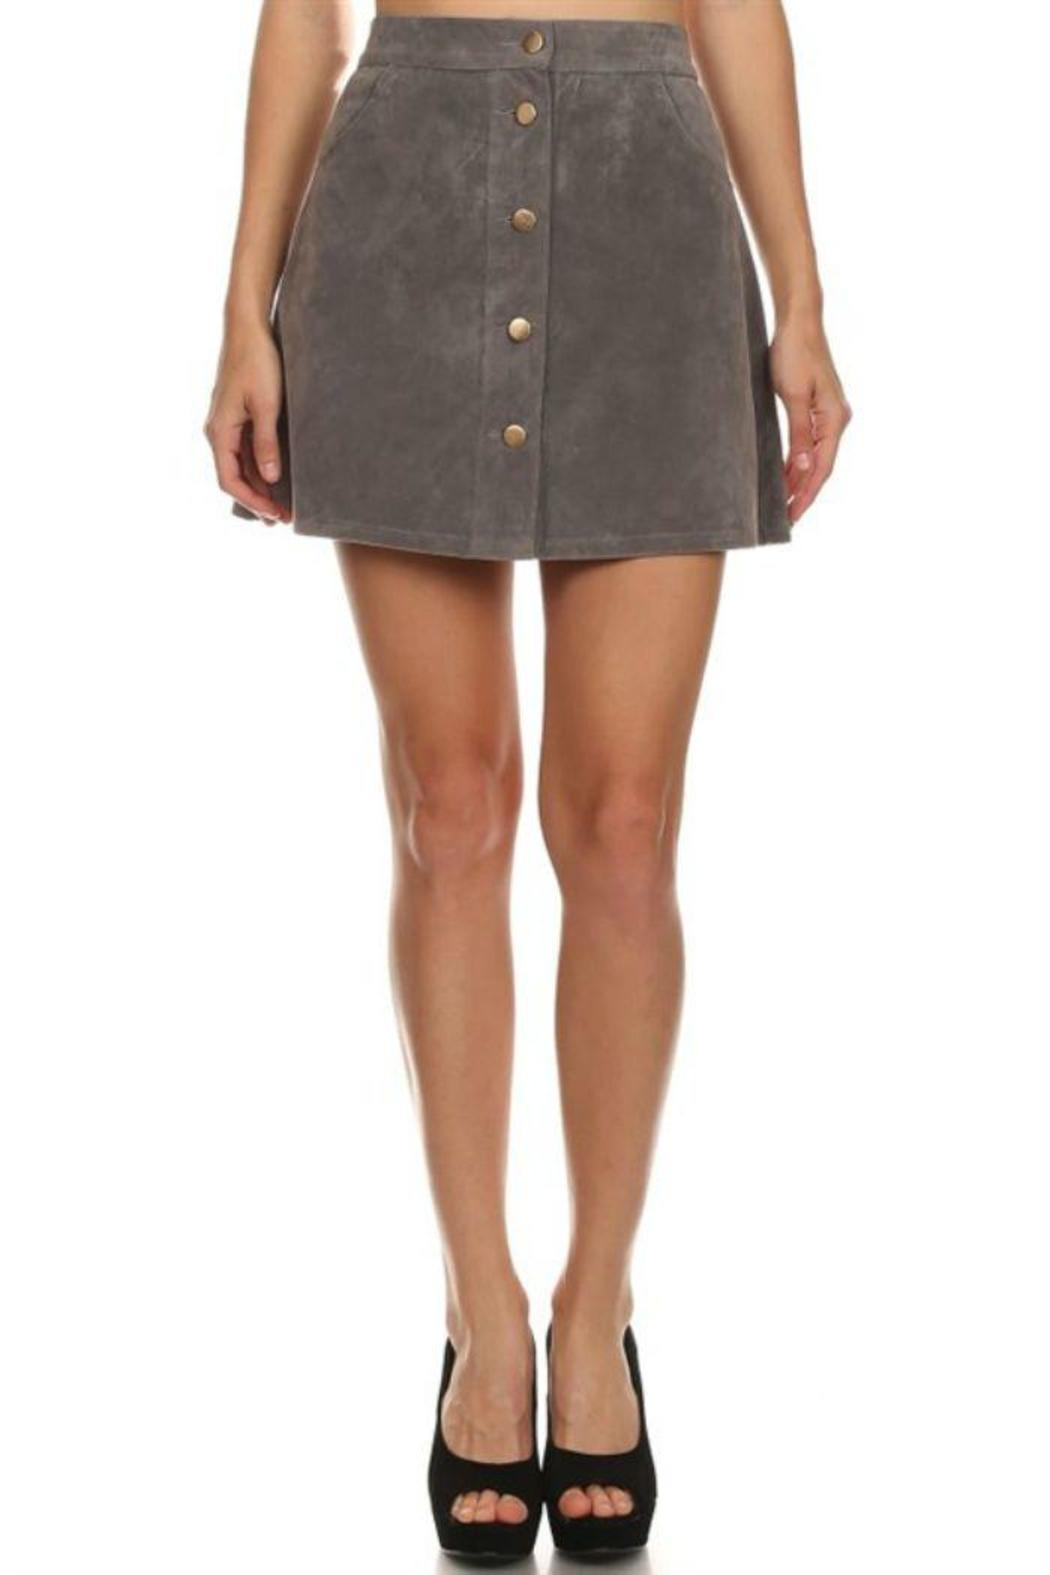 36 POINT 5 Grey Faux-Suede Skirt from Wilmington by The ...